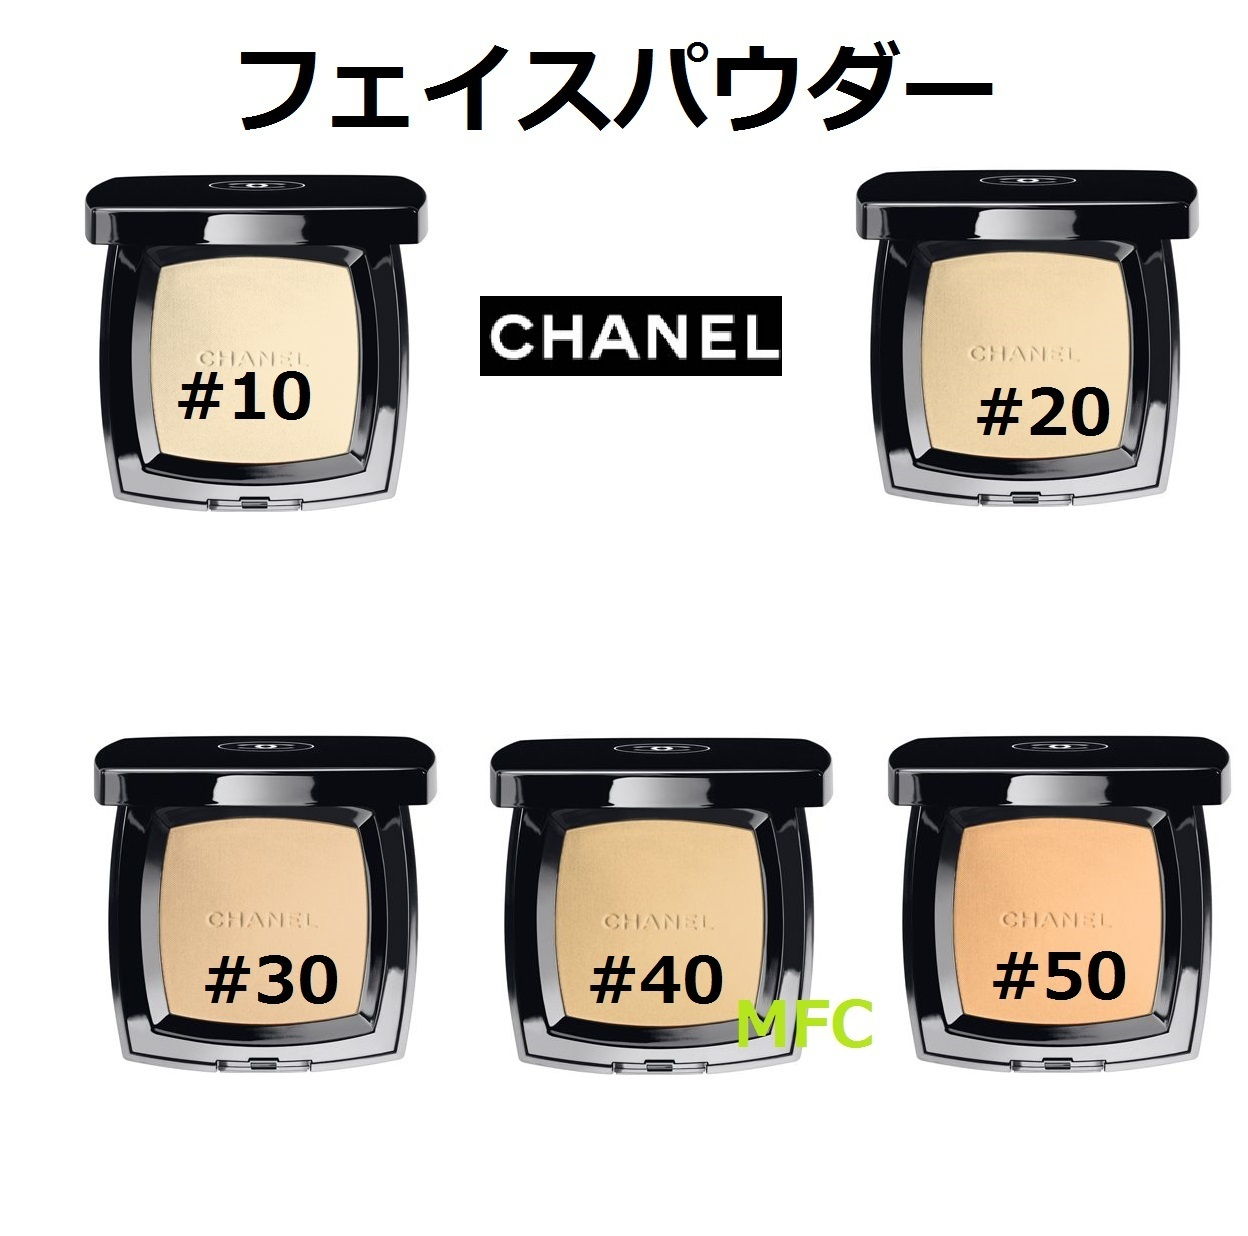 POUDRE UNIVERSELLE  プードゥル ユニヴェルセル コンパクト